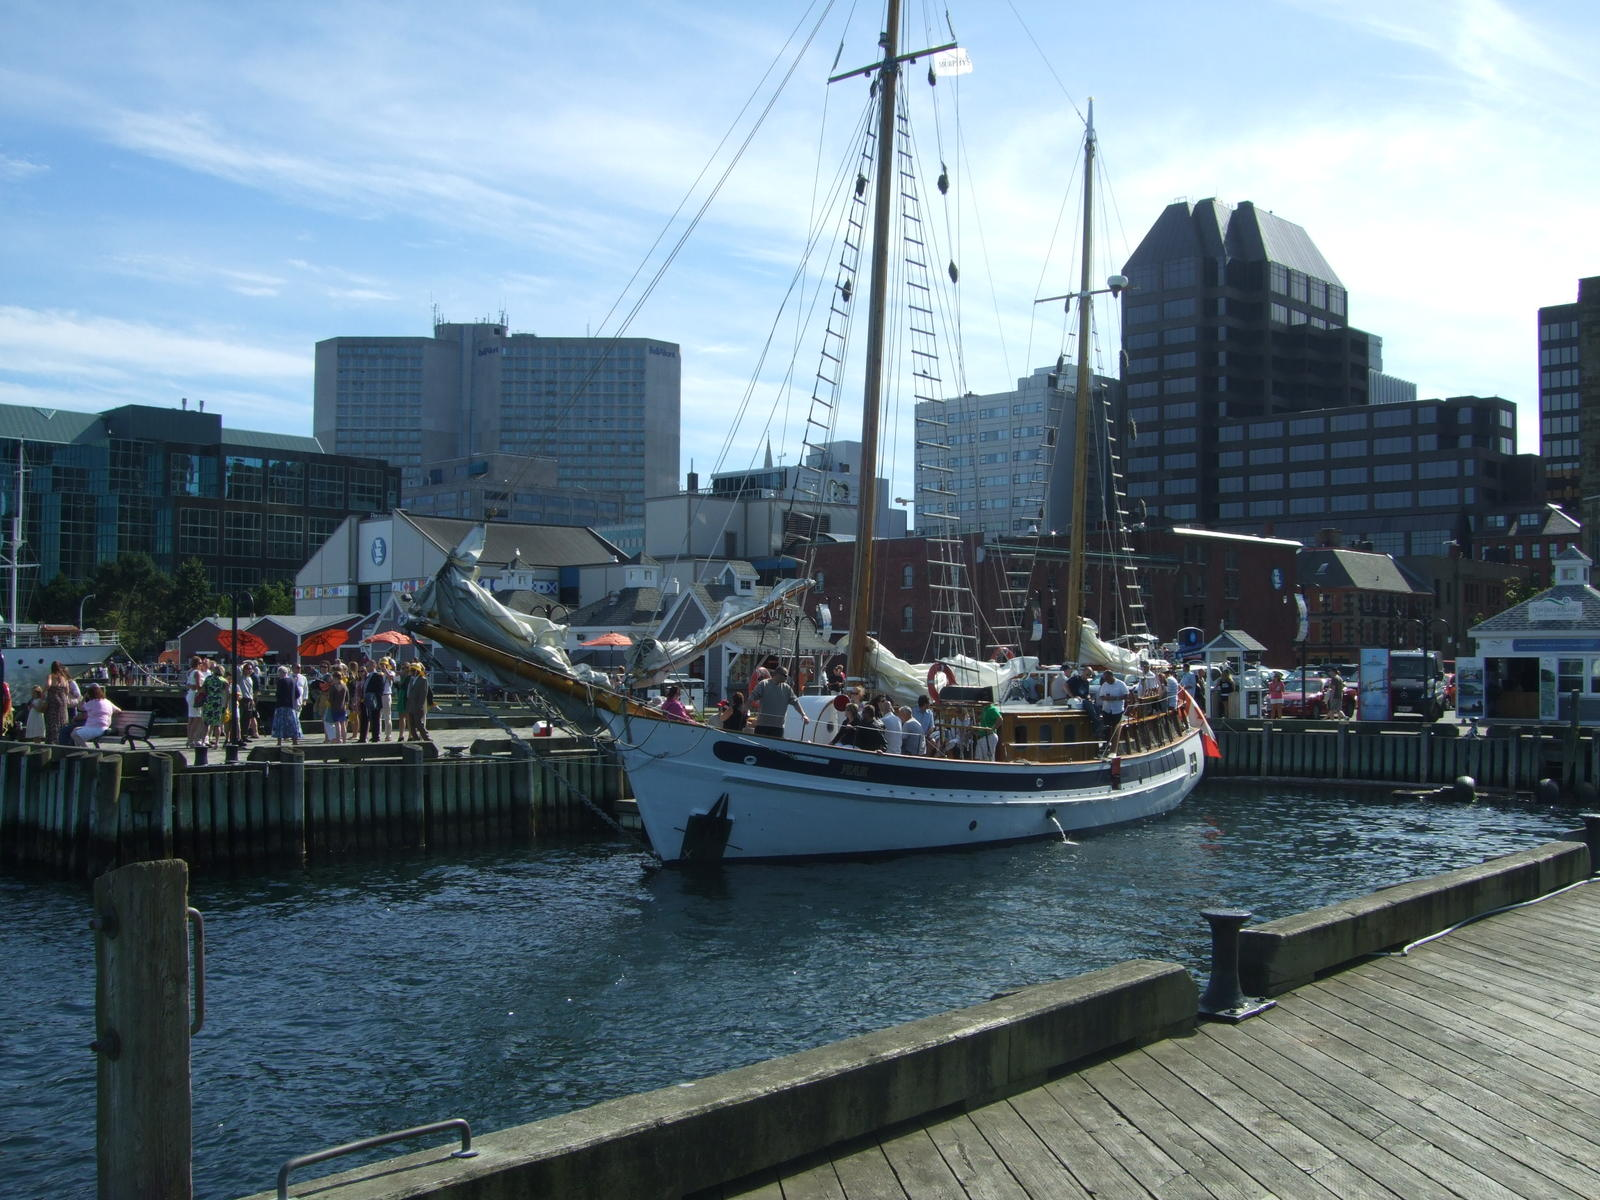 the main part of down town Halifax. The water front and it was humming with activity.